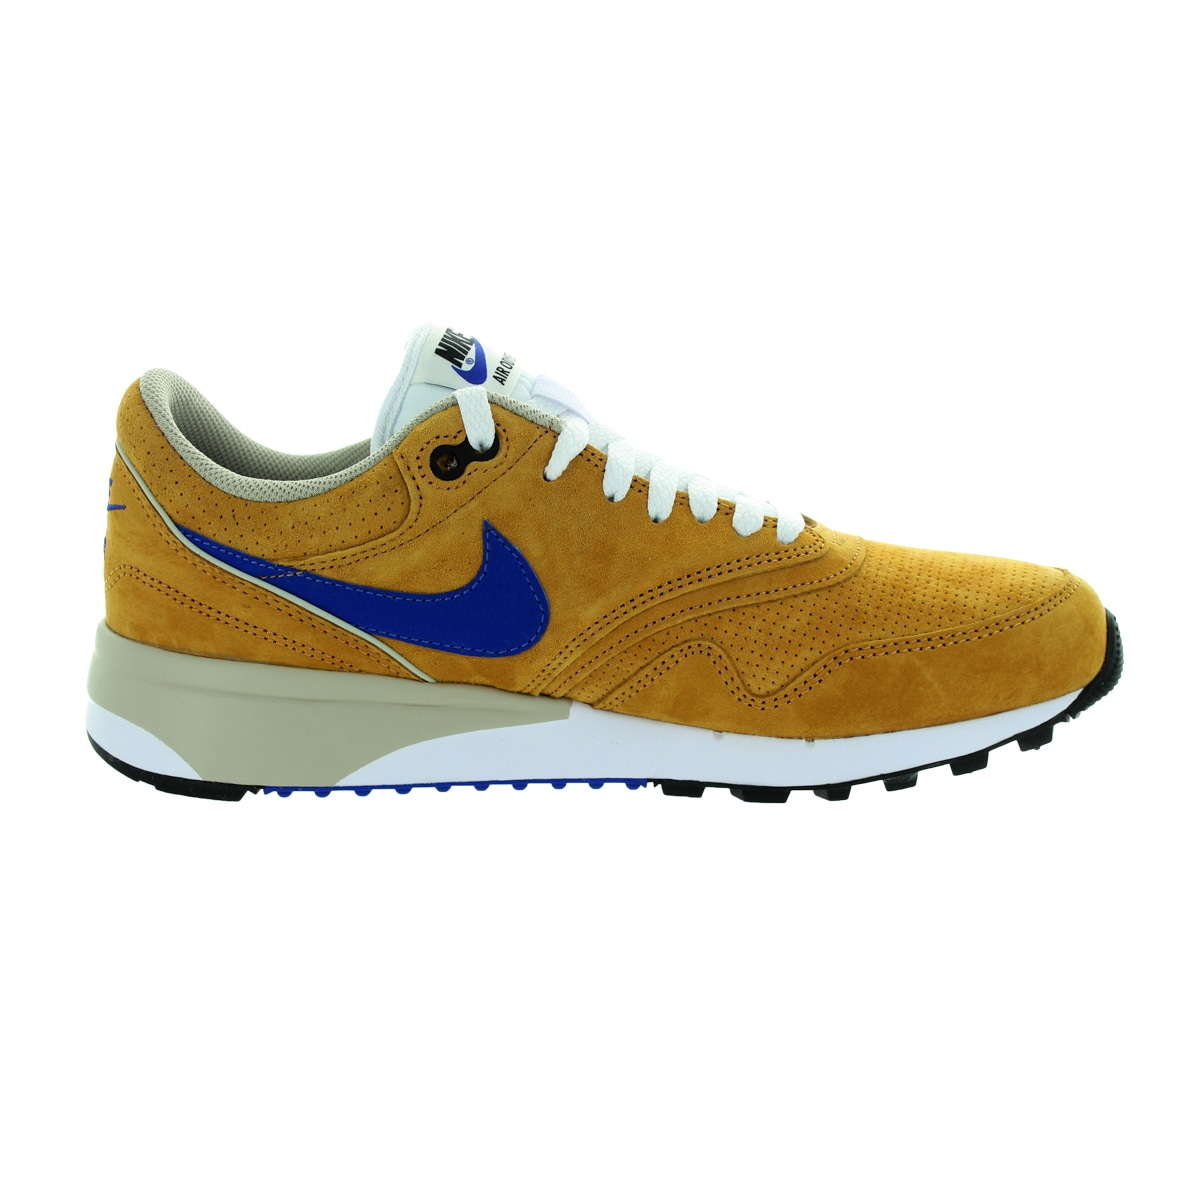 f1bb19a99034 Shop Nike Men s Air Odyssey Ltr Bronze Varsity Royal Bg Chalk Running Shoe  - Free Shipping Today - Overstock - 12330921